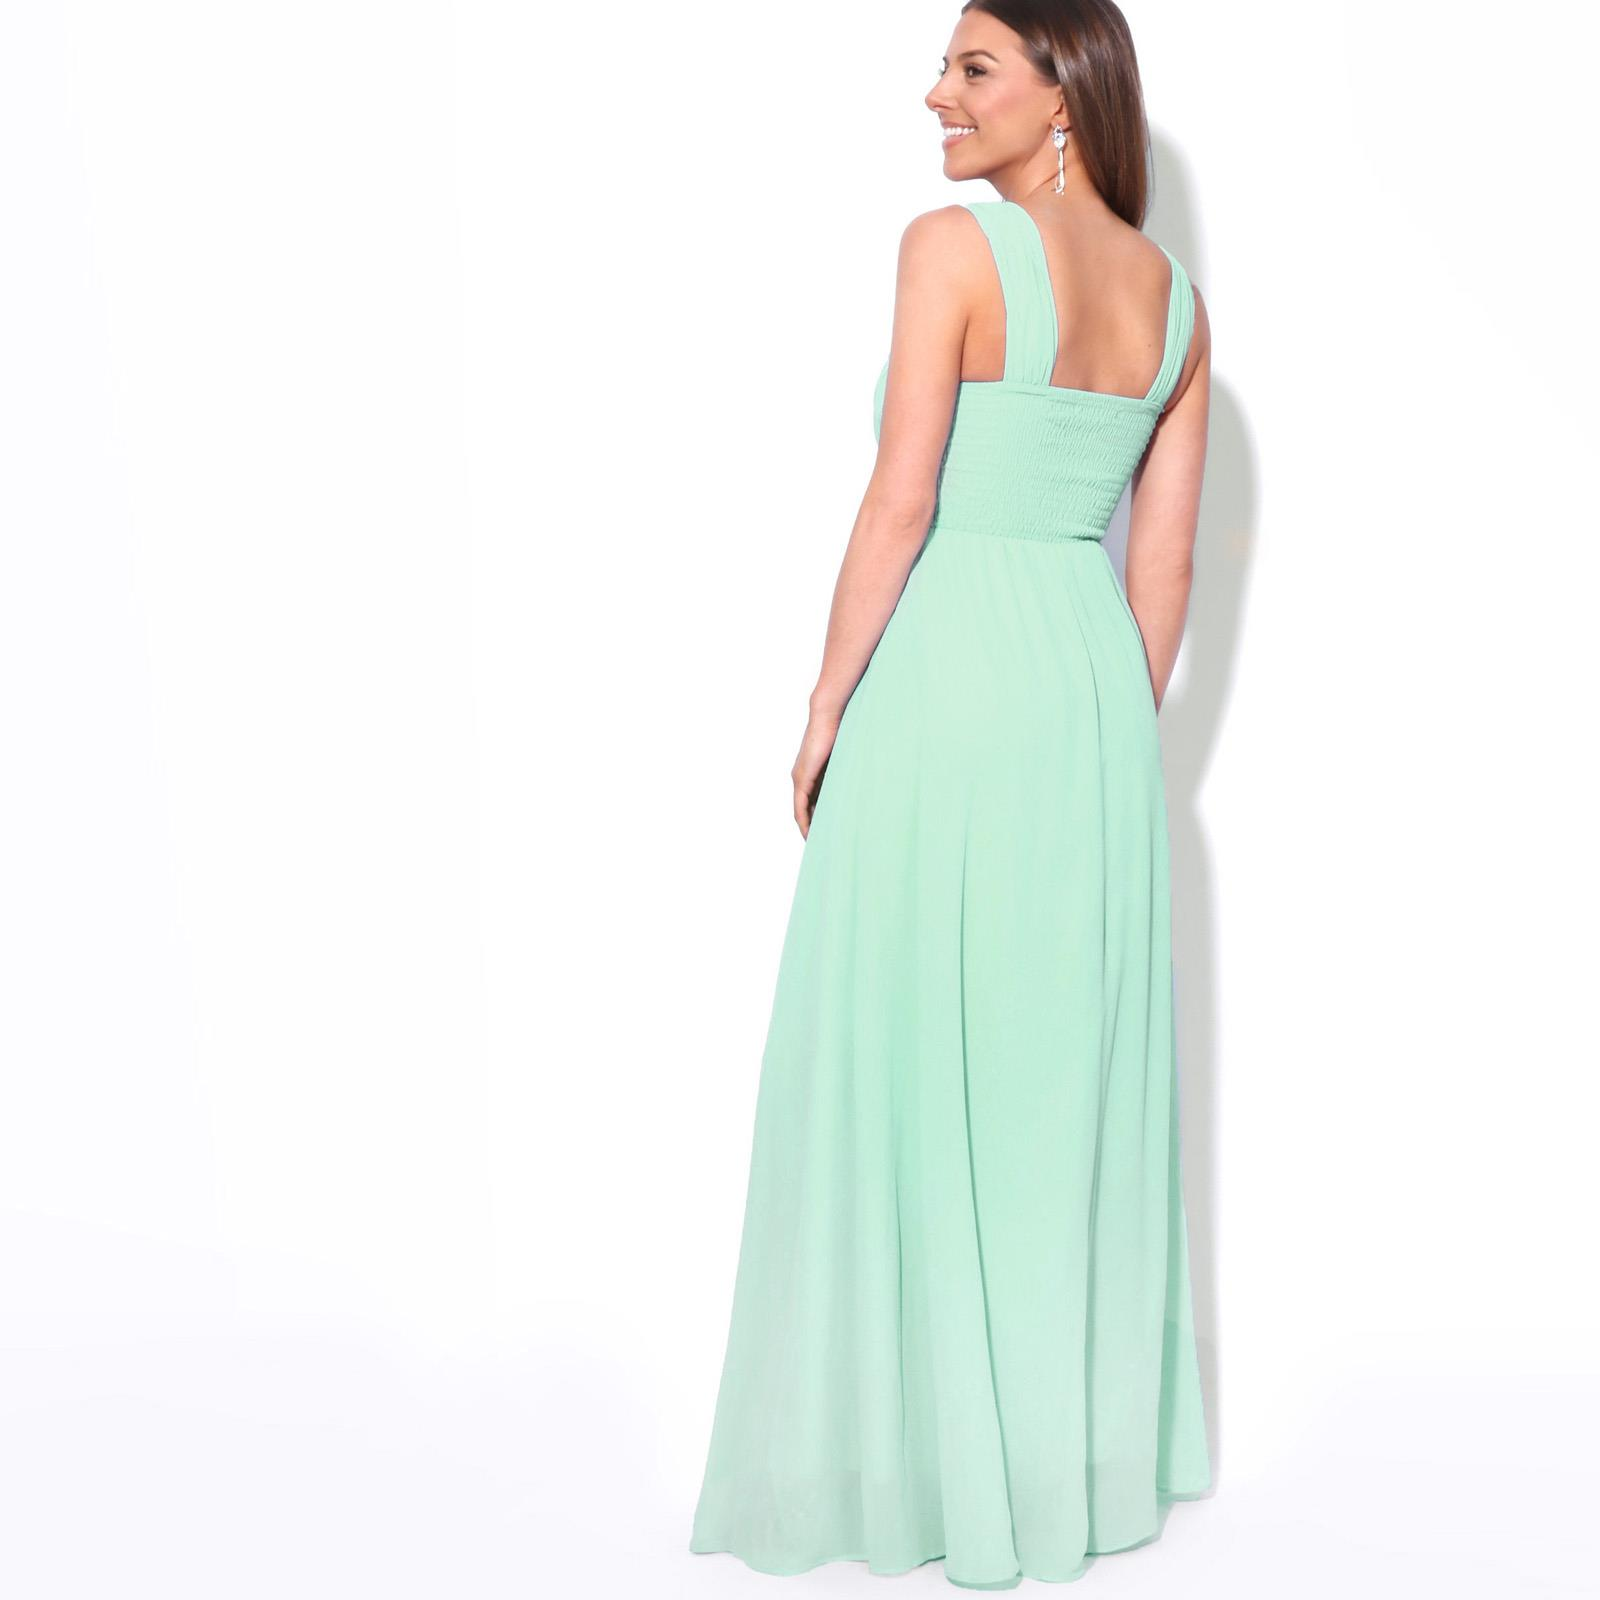 Womens-Formal-Evening-Wedding-Maxi-Prom-Dress-Long-On-Off-Shoulder-Ball-Gown thumbnail 34